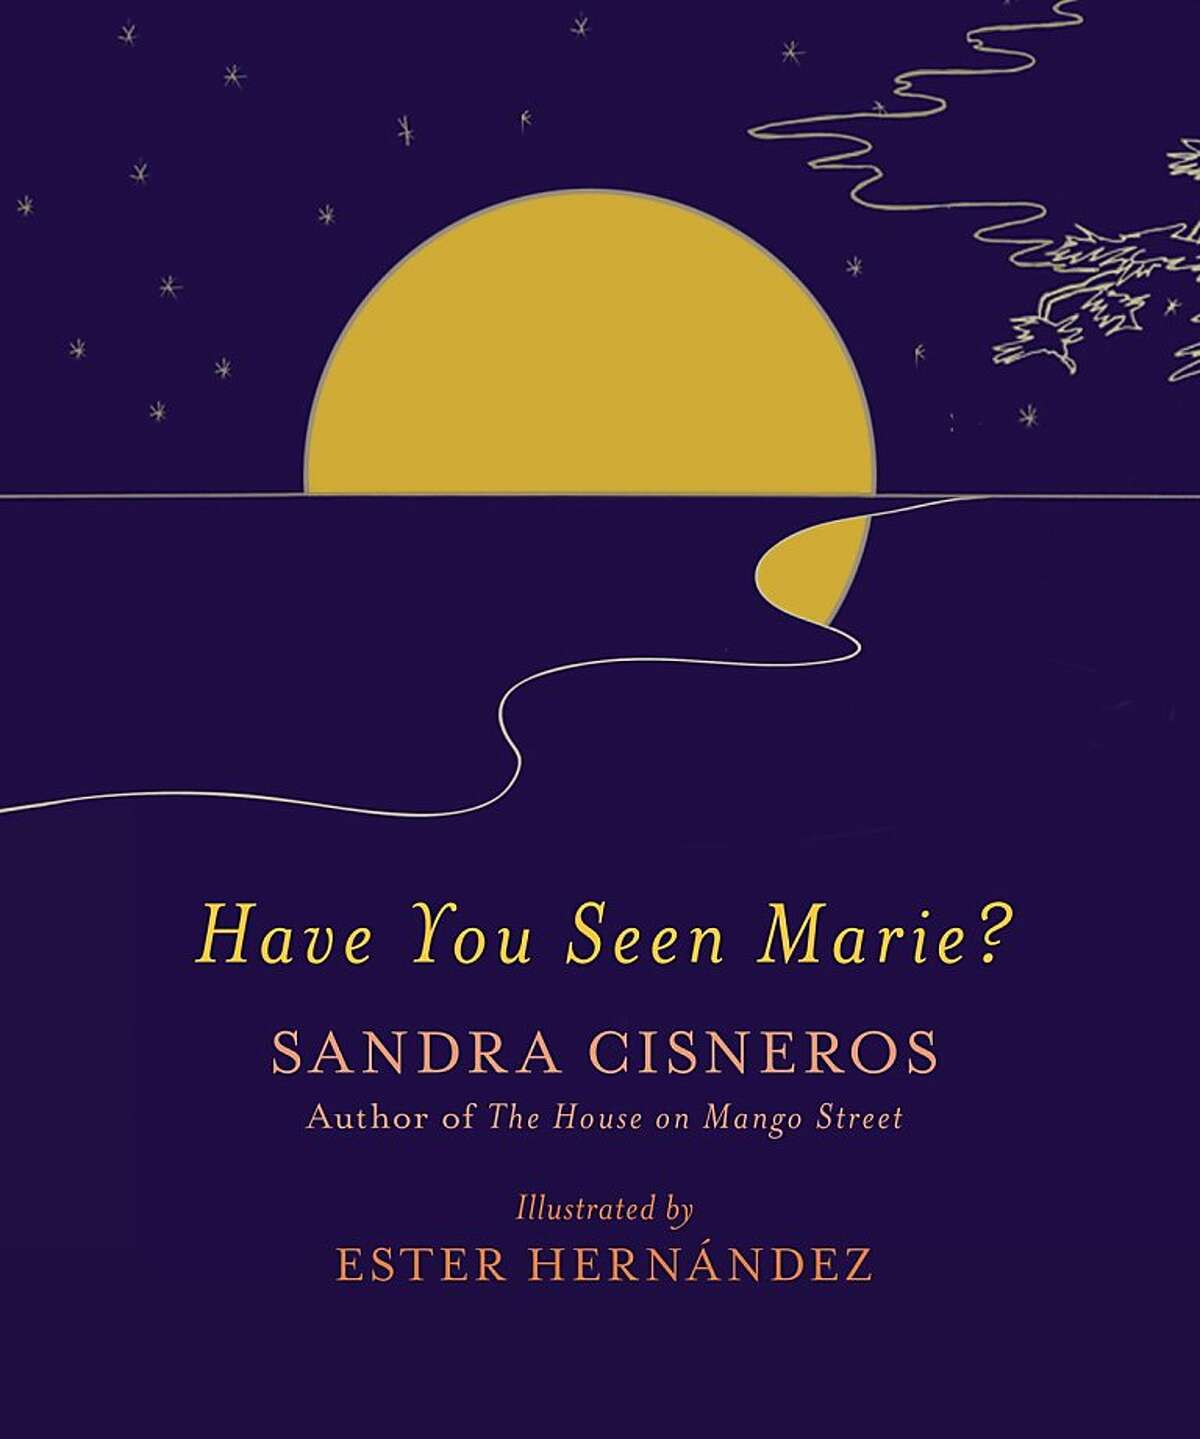 Have You Seen Marie? by Sandra Cisneros and illustrated by Ester Hernandez